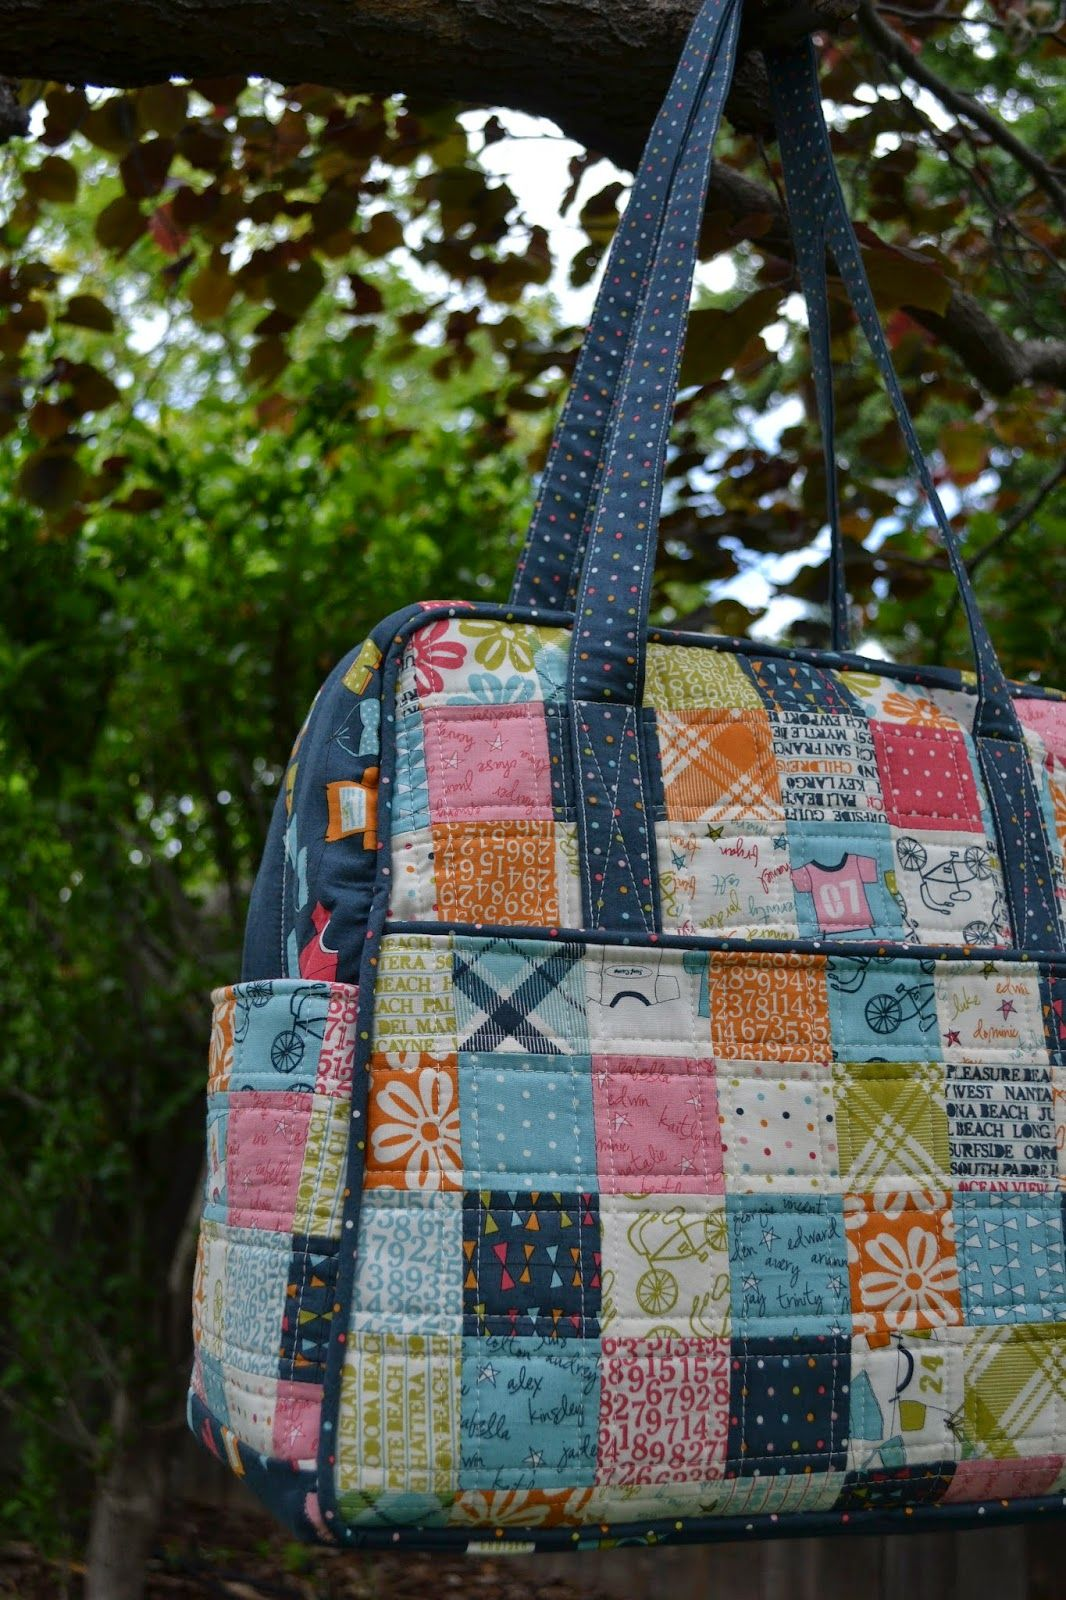 Porch Swing Quilts: Finish it up Friday: Lucy's Crab Shack Patchwork Weekender